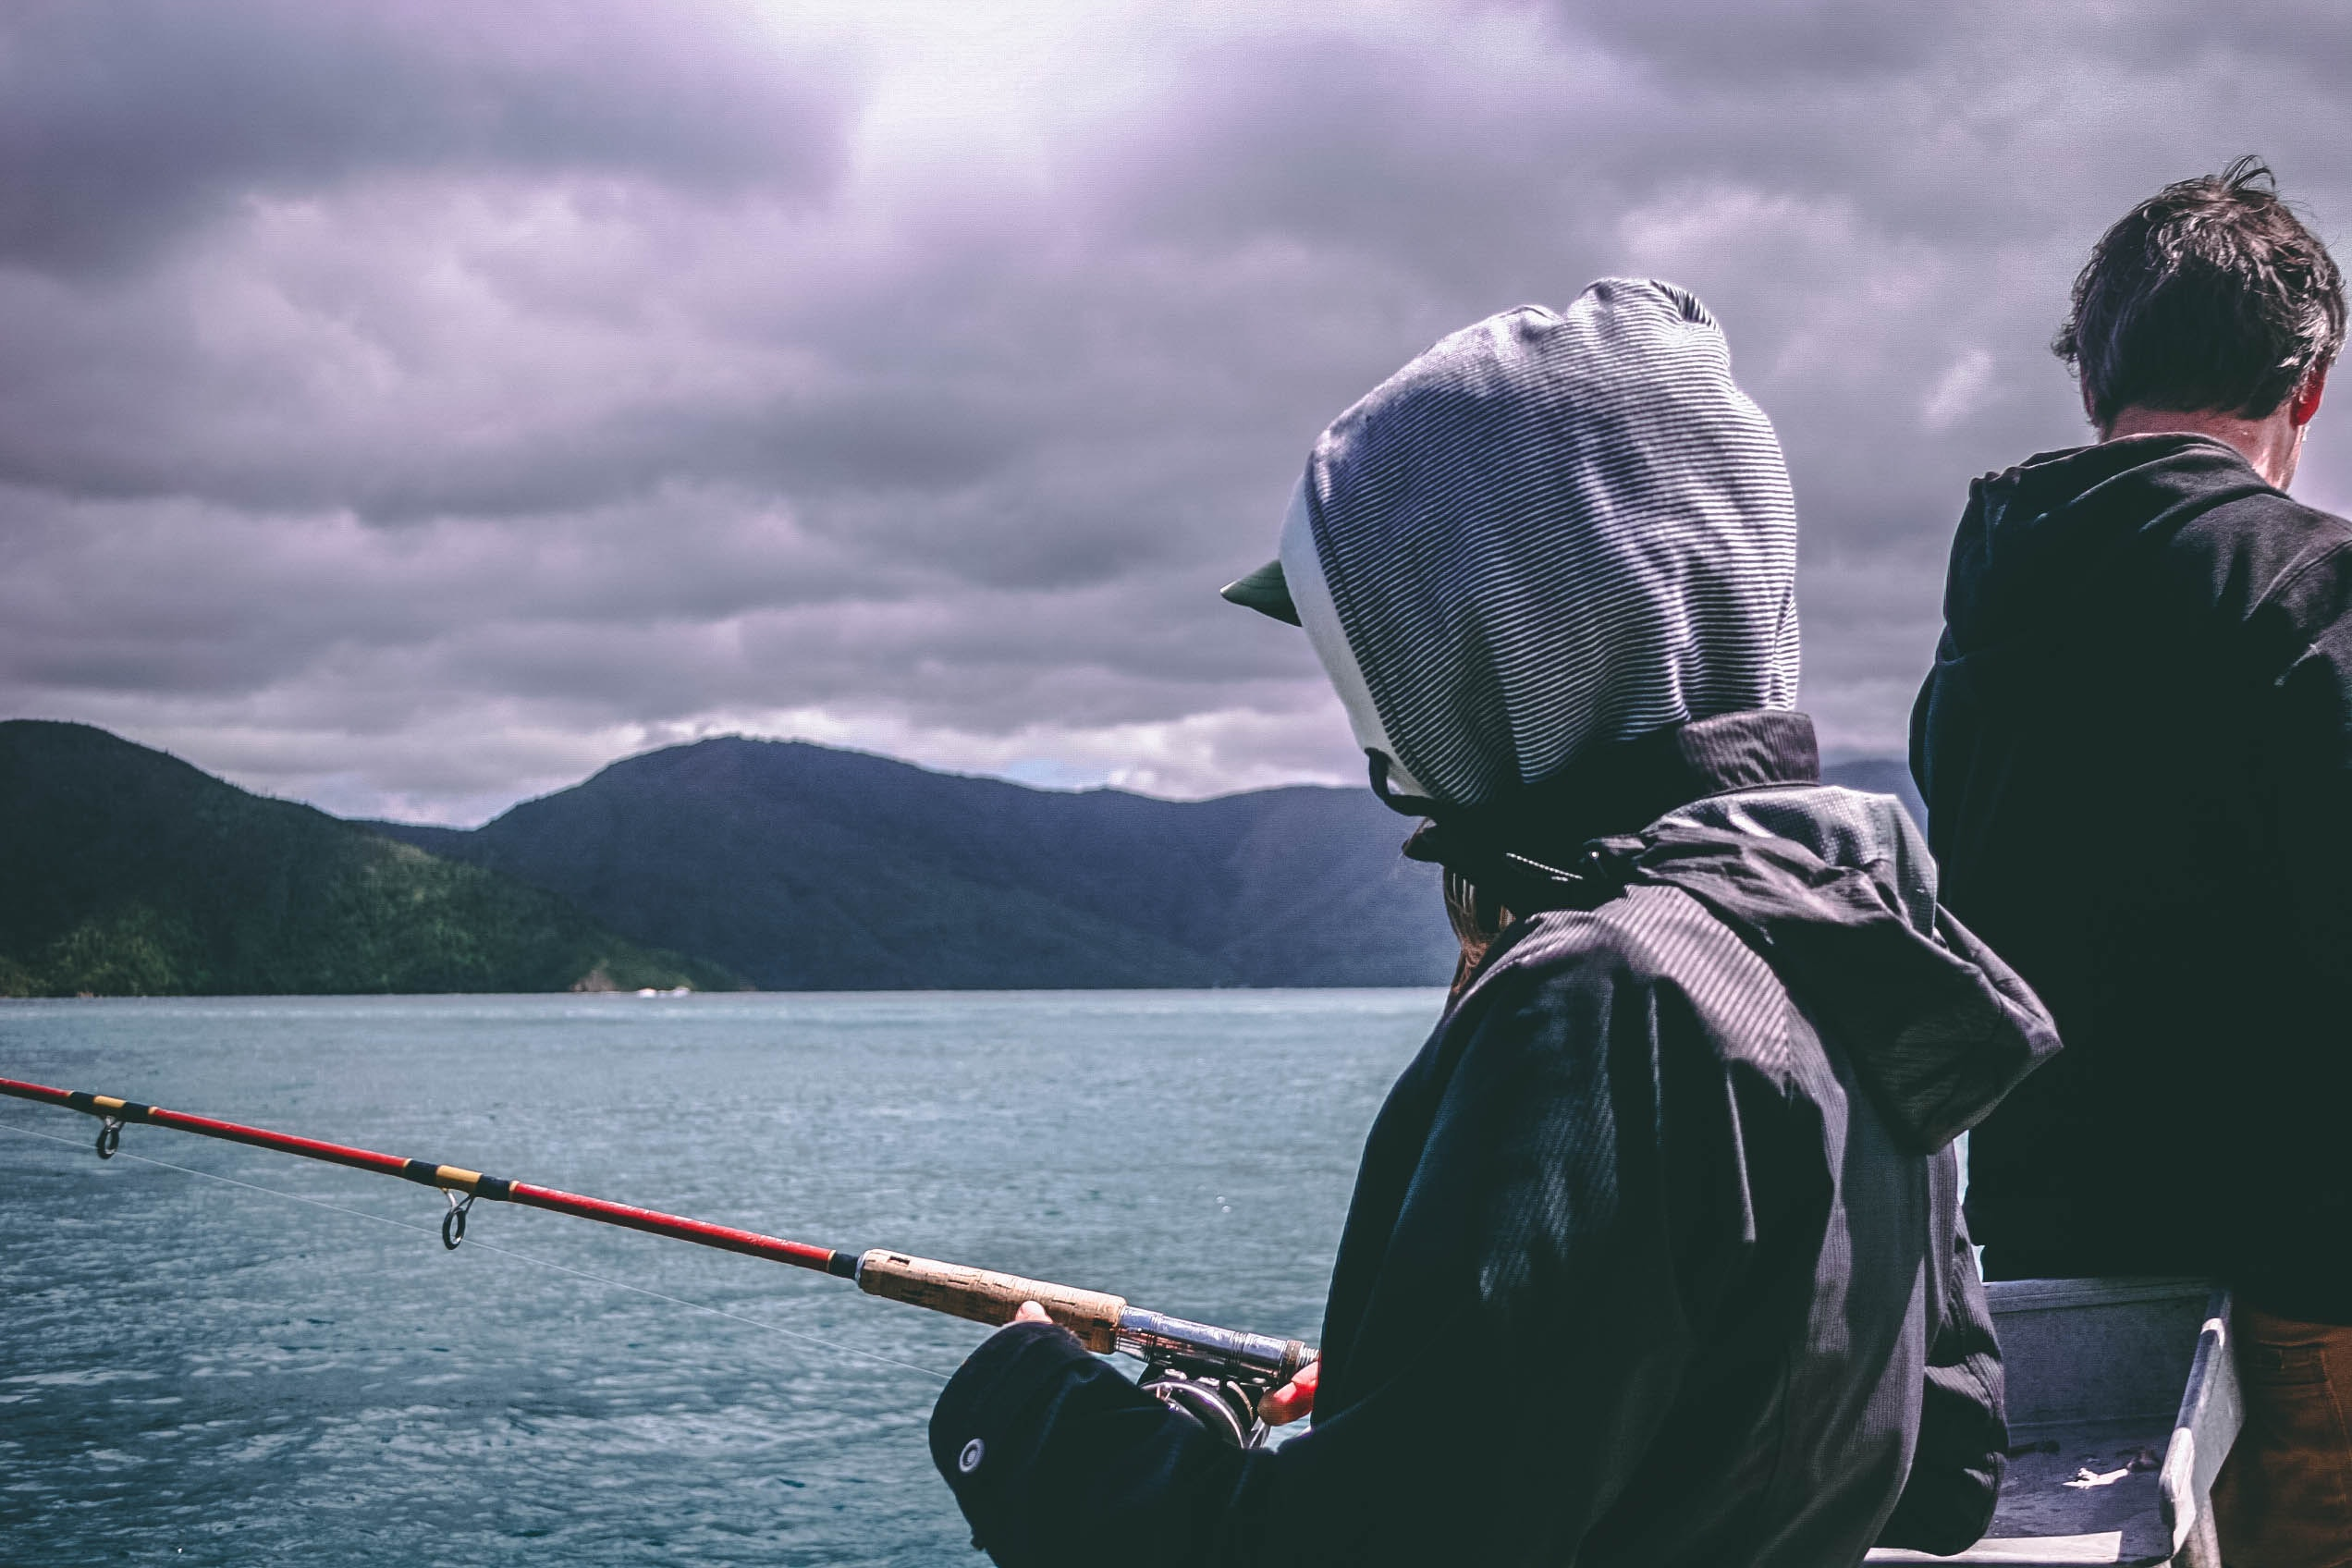 beach-clouds-daylight-fishing-848737